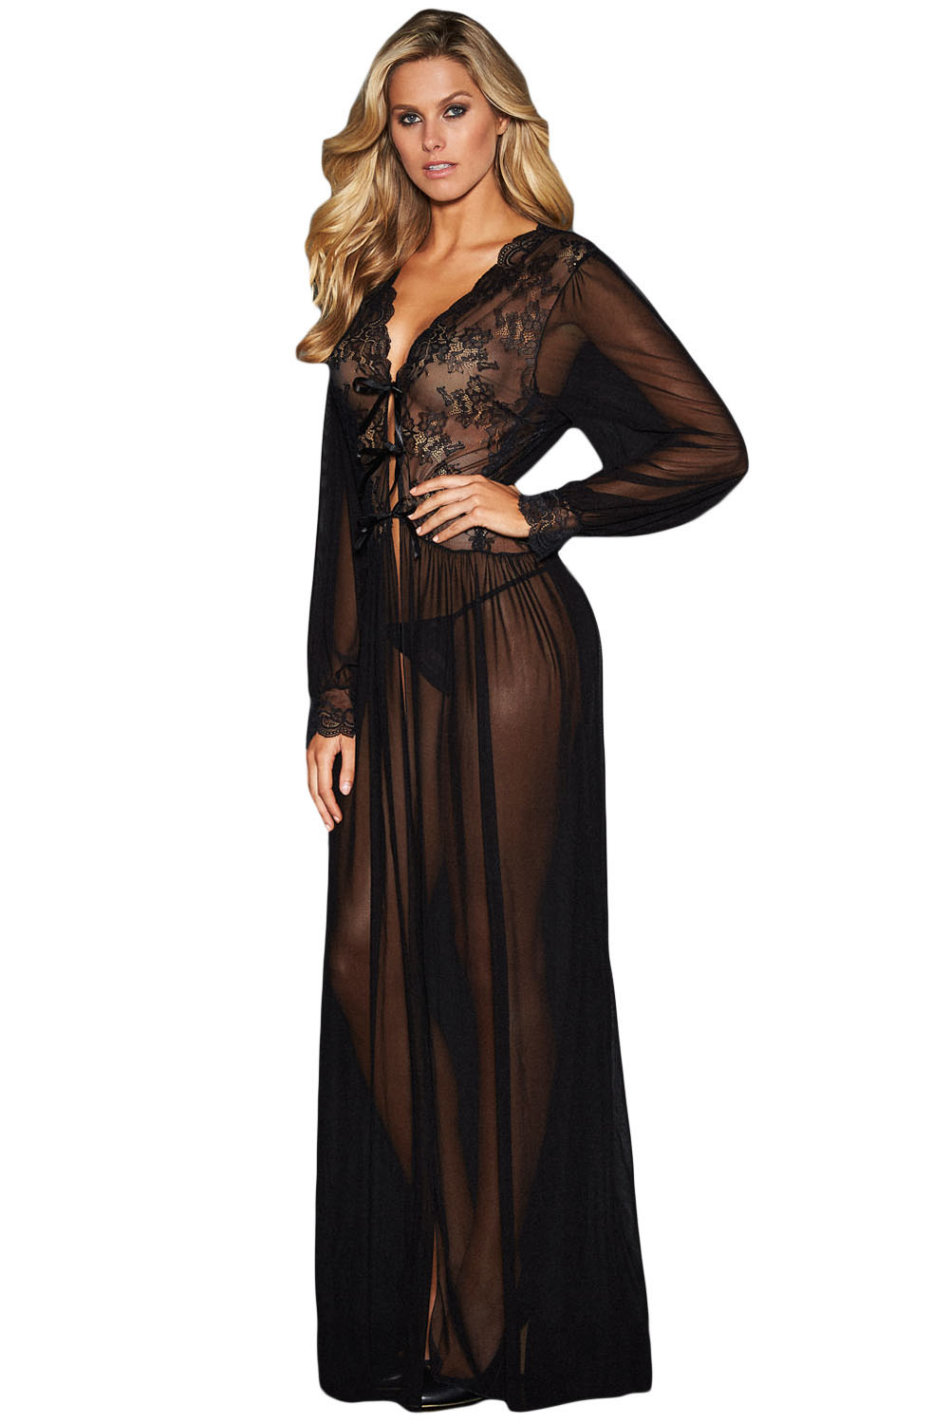 8aac6f4843a Sleepwear - Sexy Black Sheer Long Sleeve Lace Robe Set - L was ...